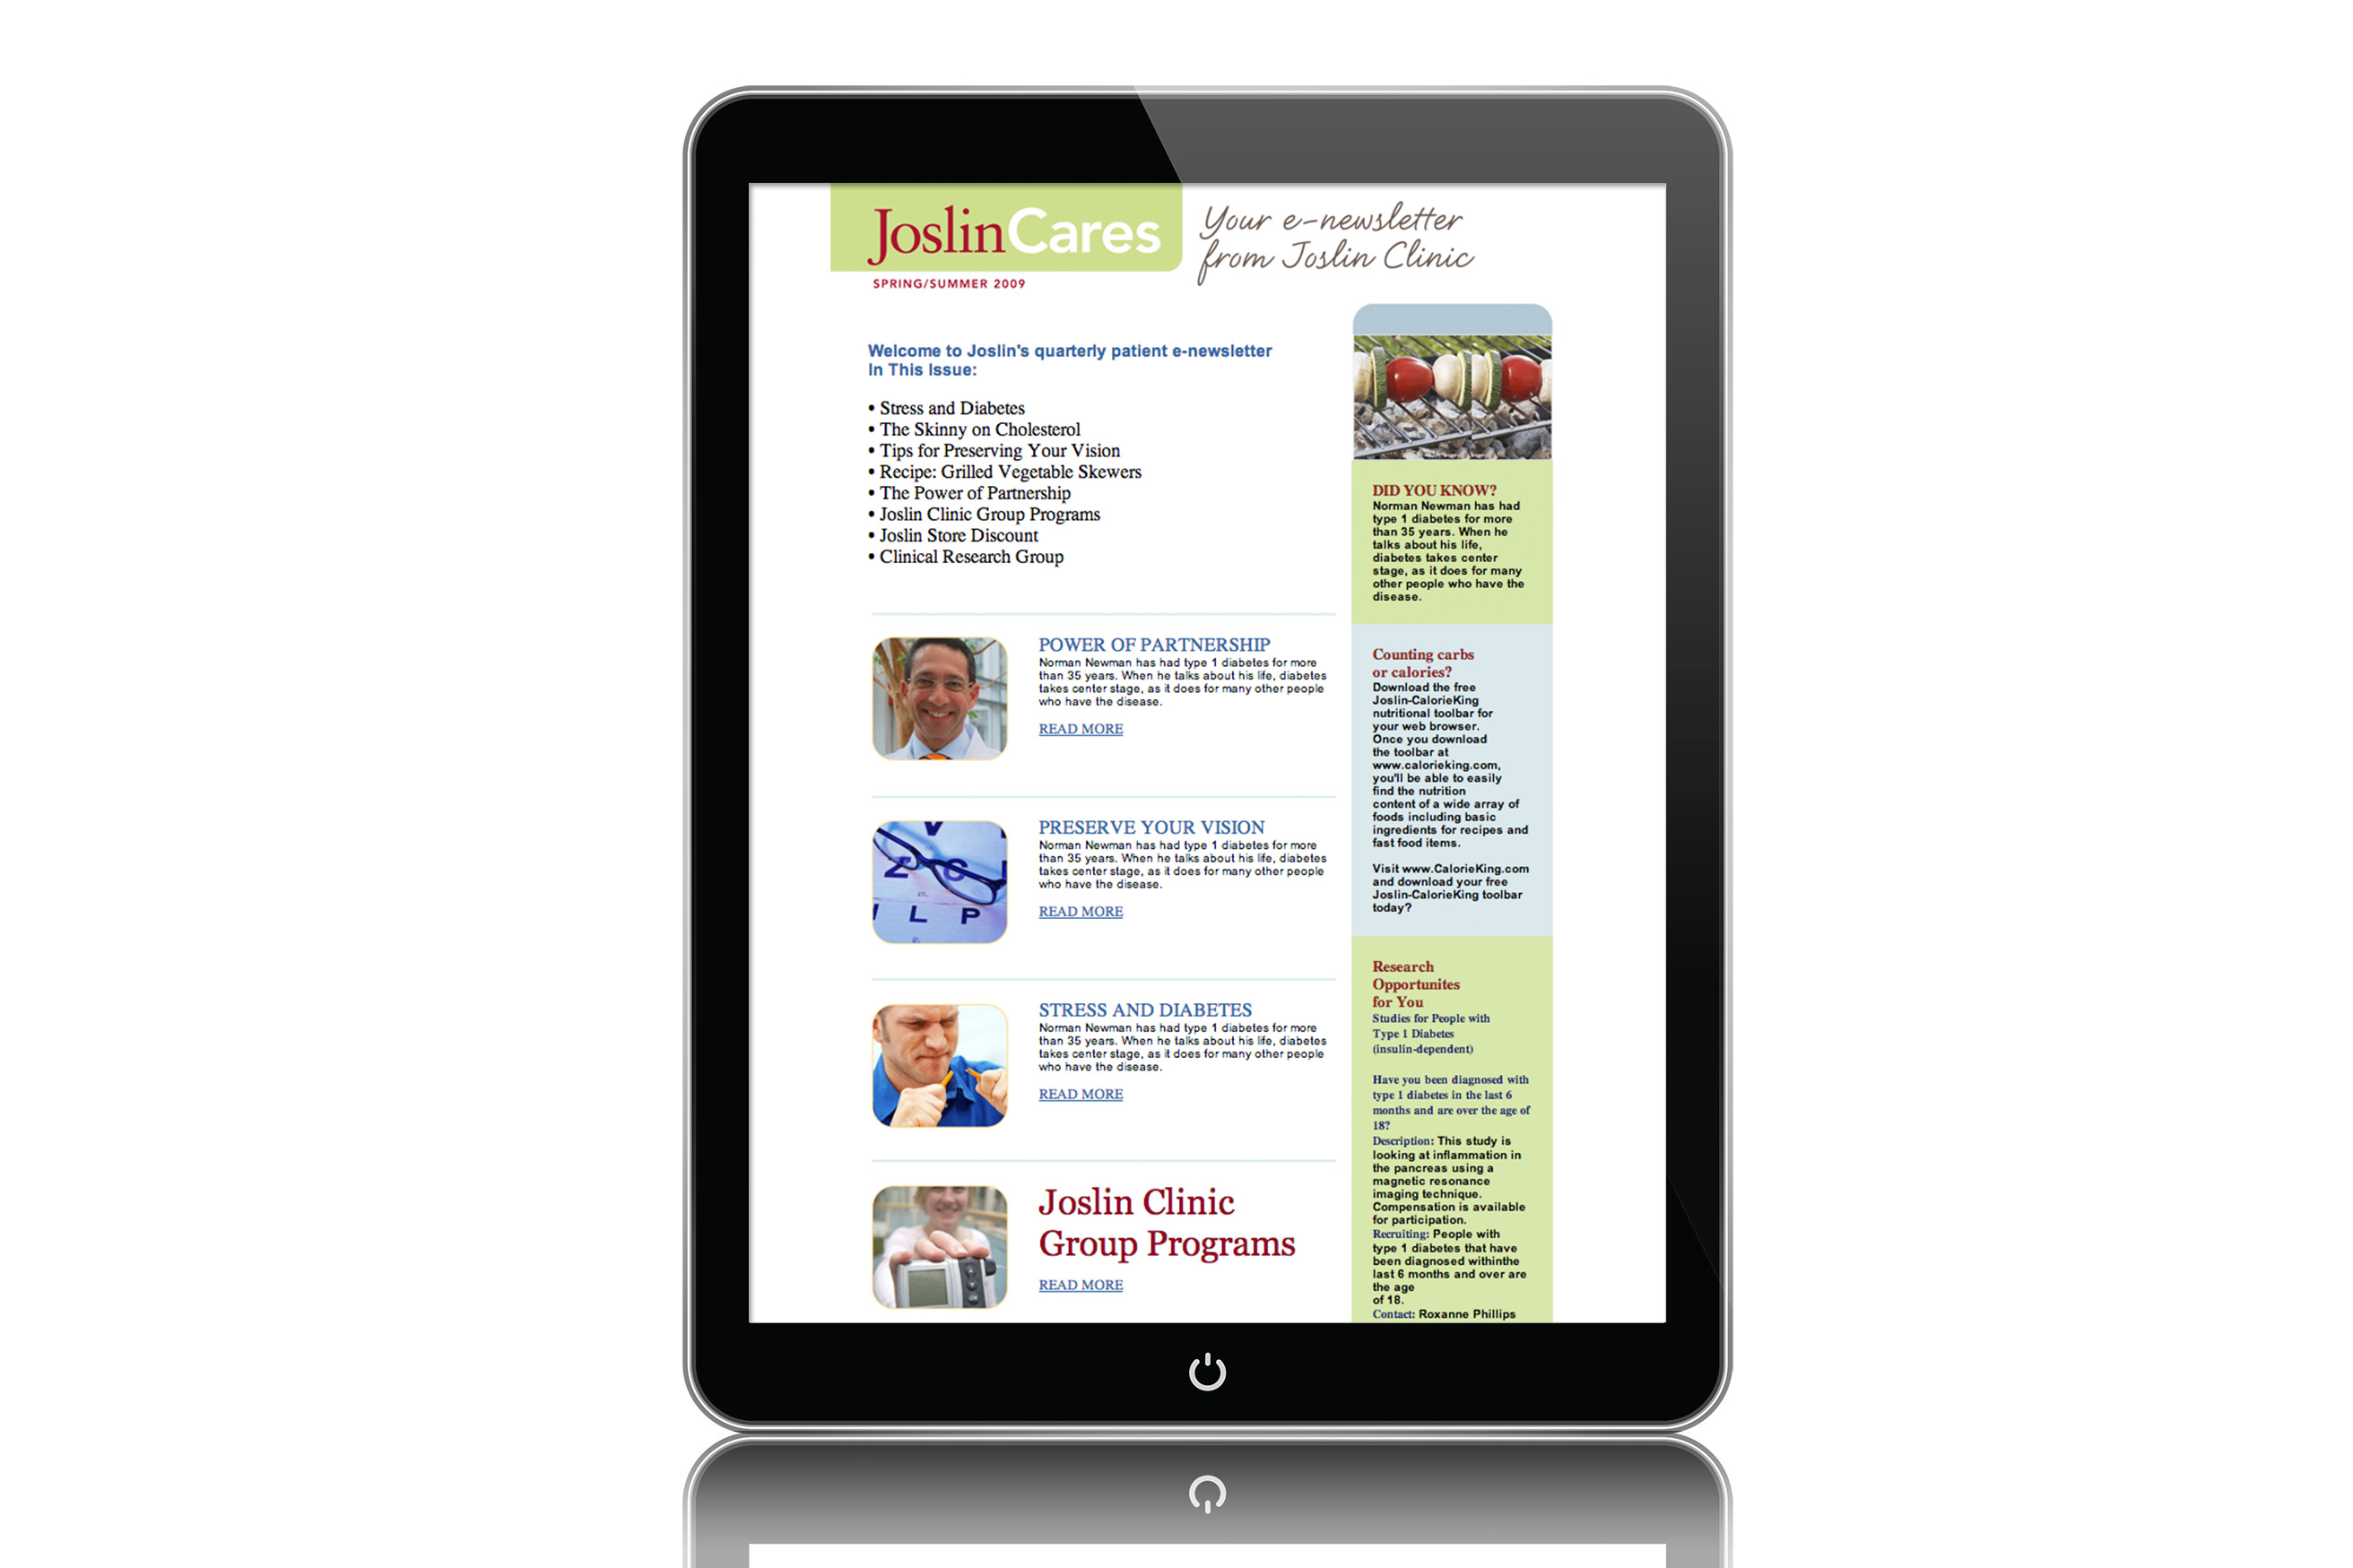 Joslin Monthly Patient E-Newsletter